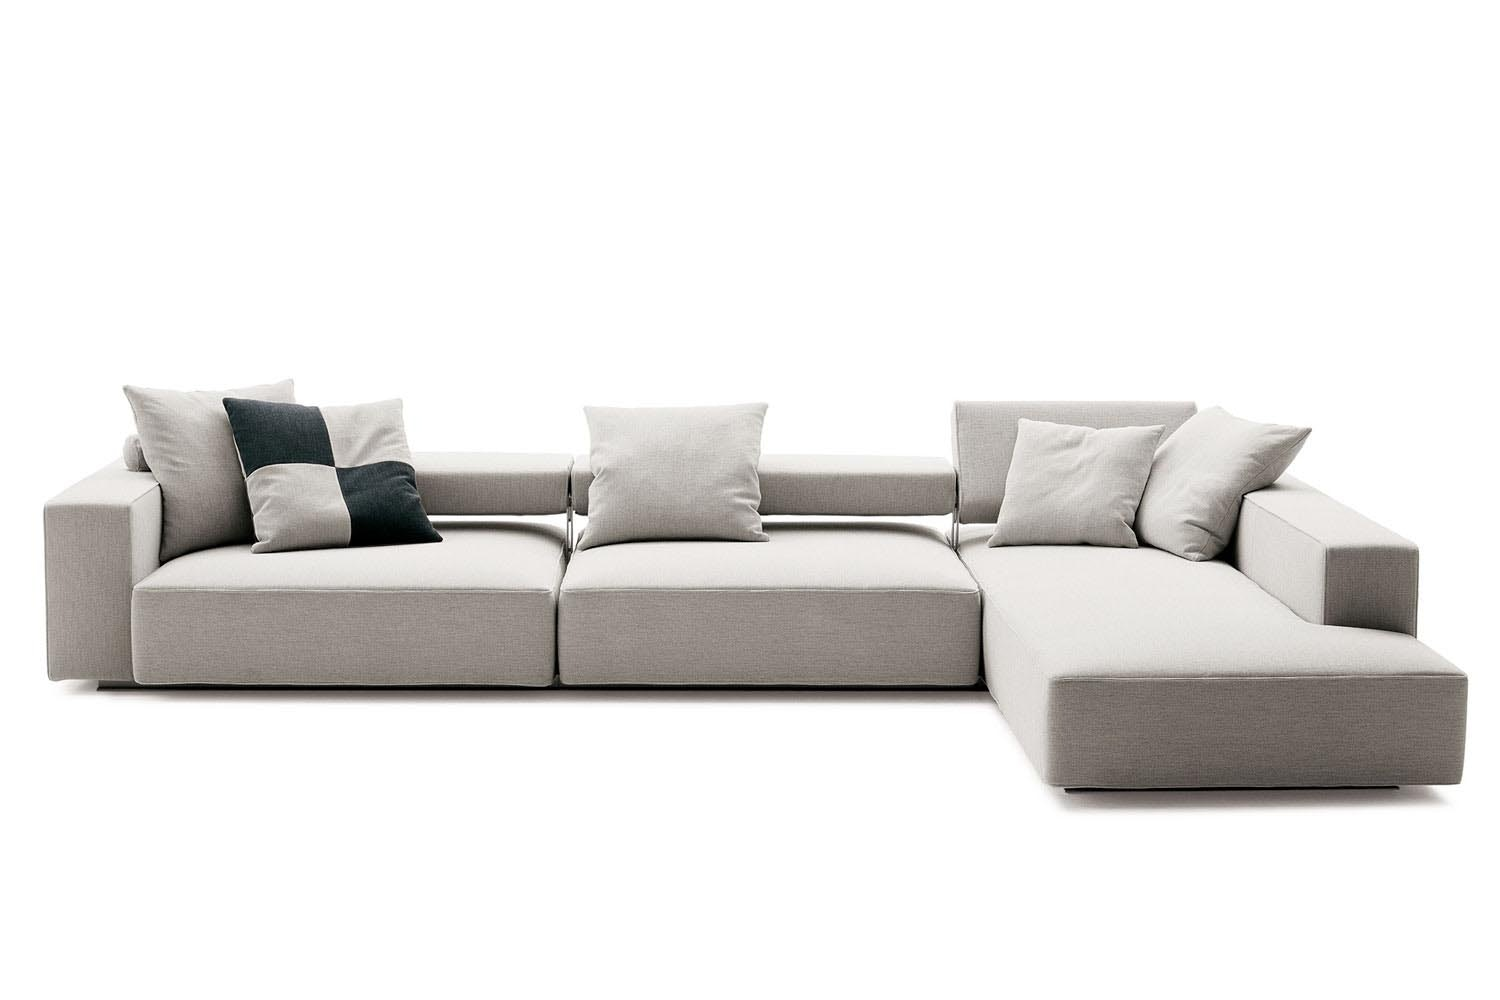 Bb italy furniture Mini Papilio Andy Sofa By Paolo Piva For Bb Italia Cgsouqcom Andy Sofa By Paolo Piva For Bb Italia Space Furniture